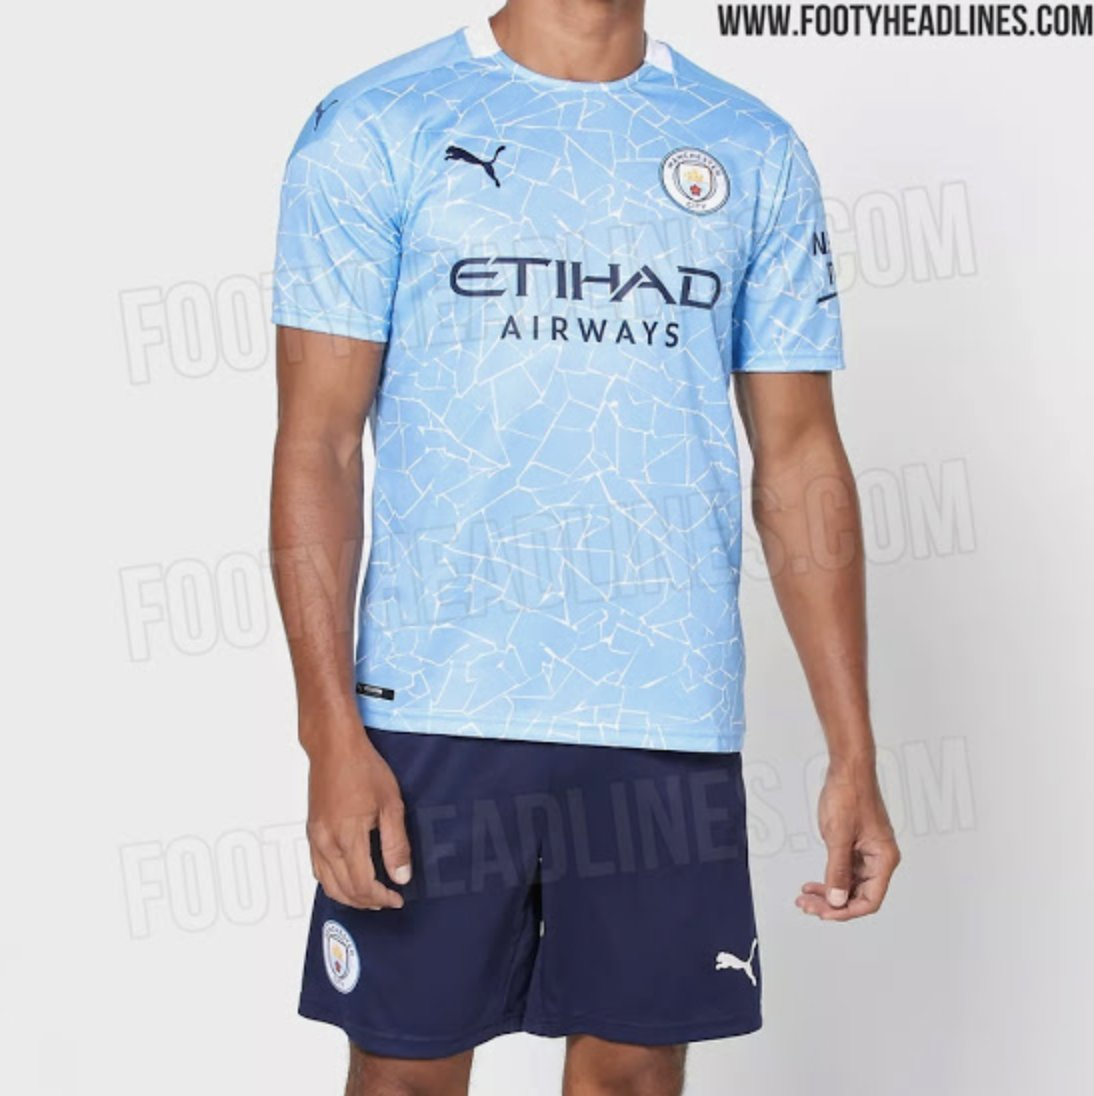 LEAKED: The shorts to accompany the new 2020/21 #ManCity home shirt are navy.  [via @Footy_Headlines]pic.twitter.com/8J55ONHW1Z